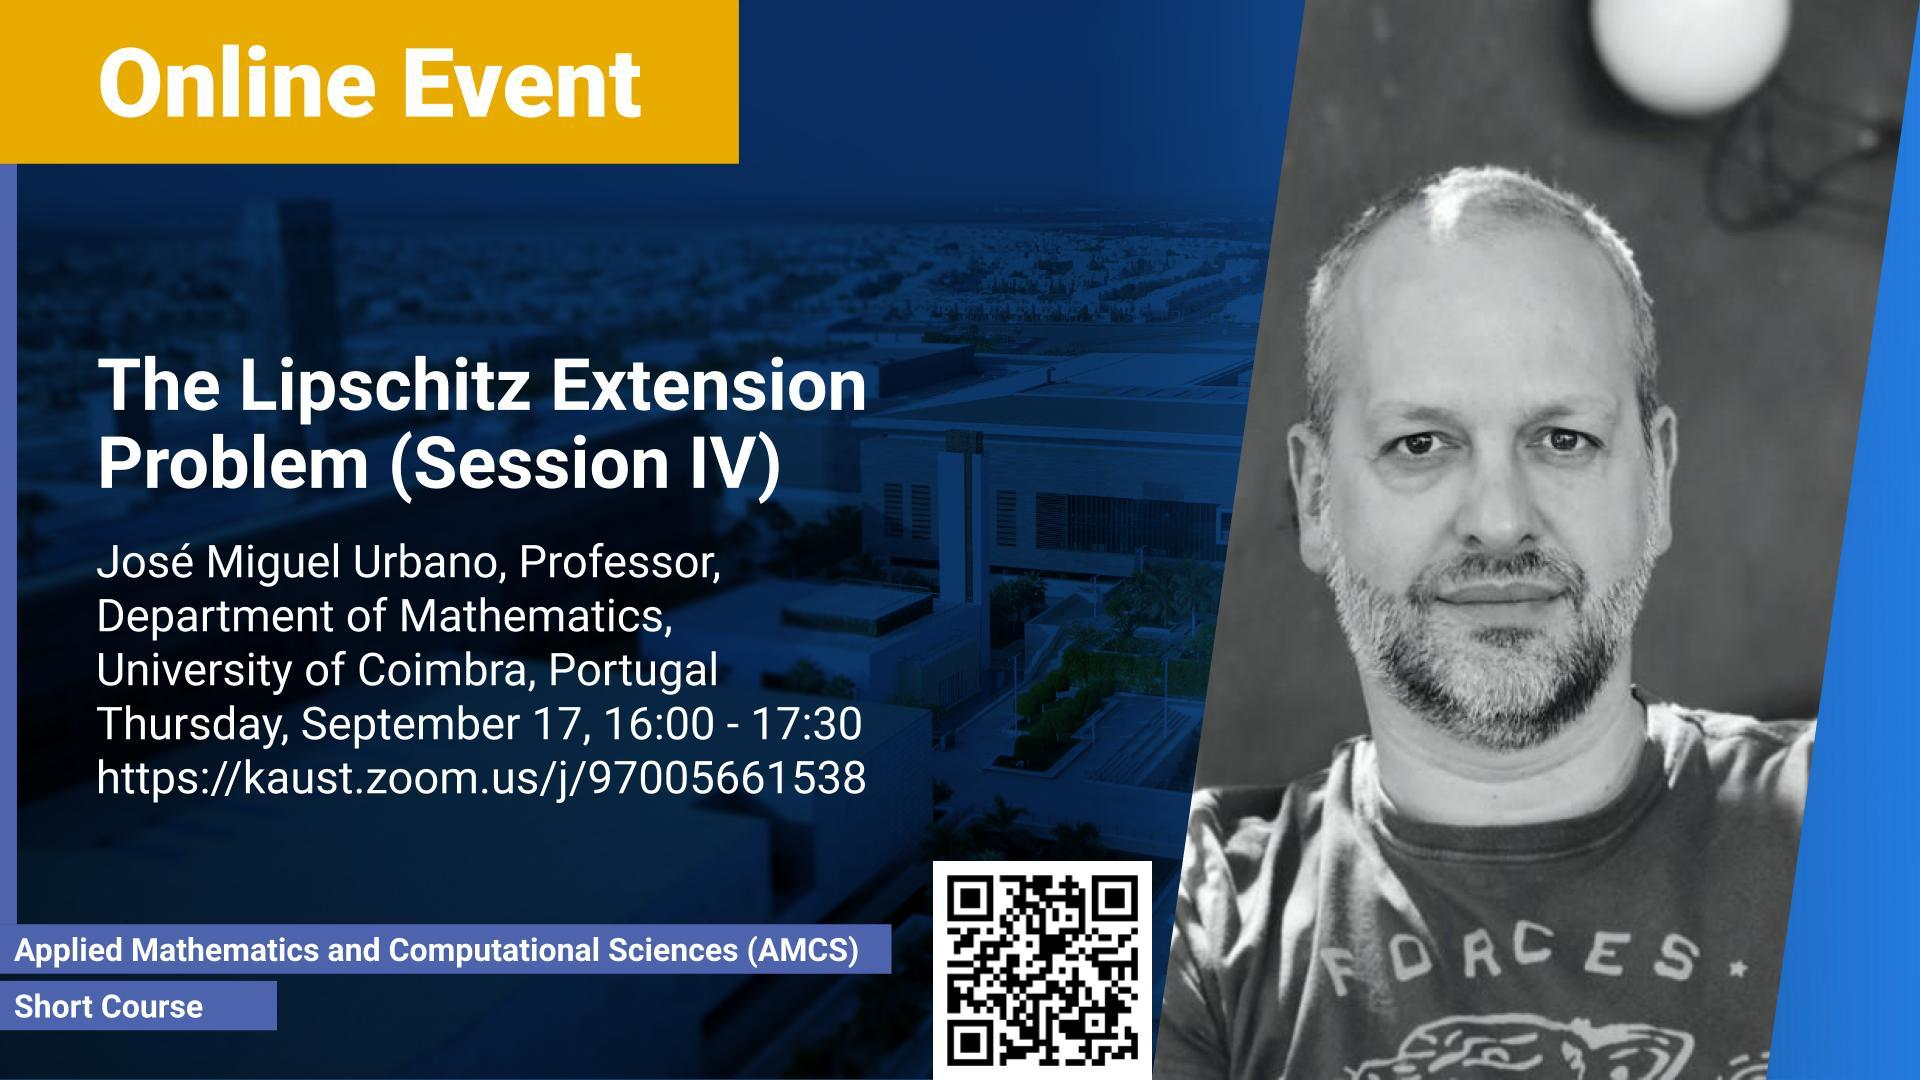 KAUST CEMSE AMCS Short Course José Miguel Urbano The Lipschitz Extension Problem (Session IV)